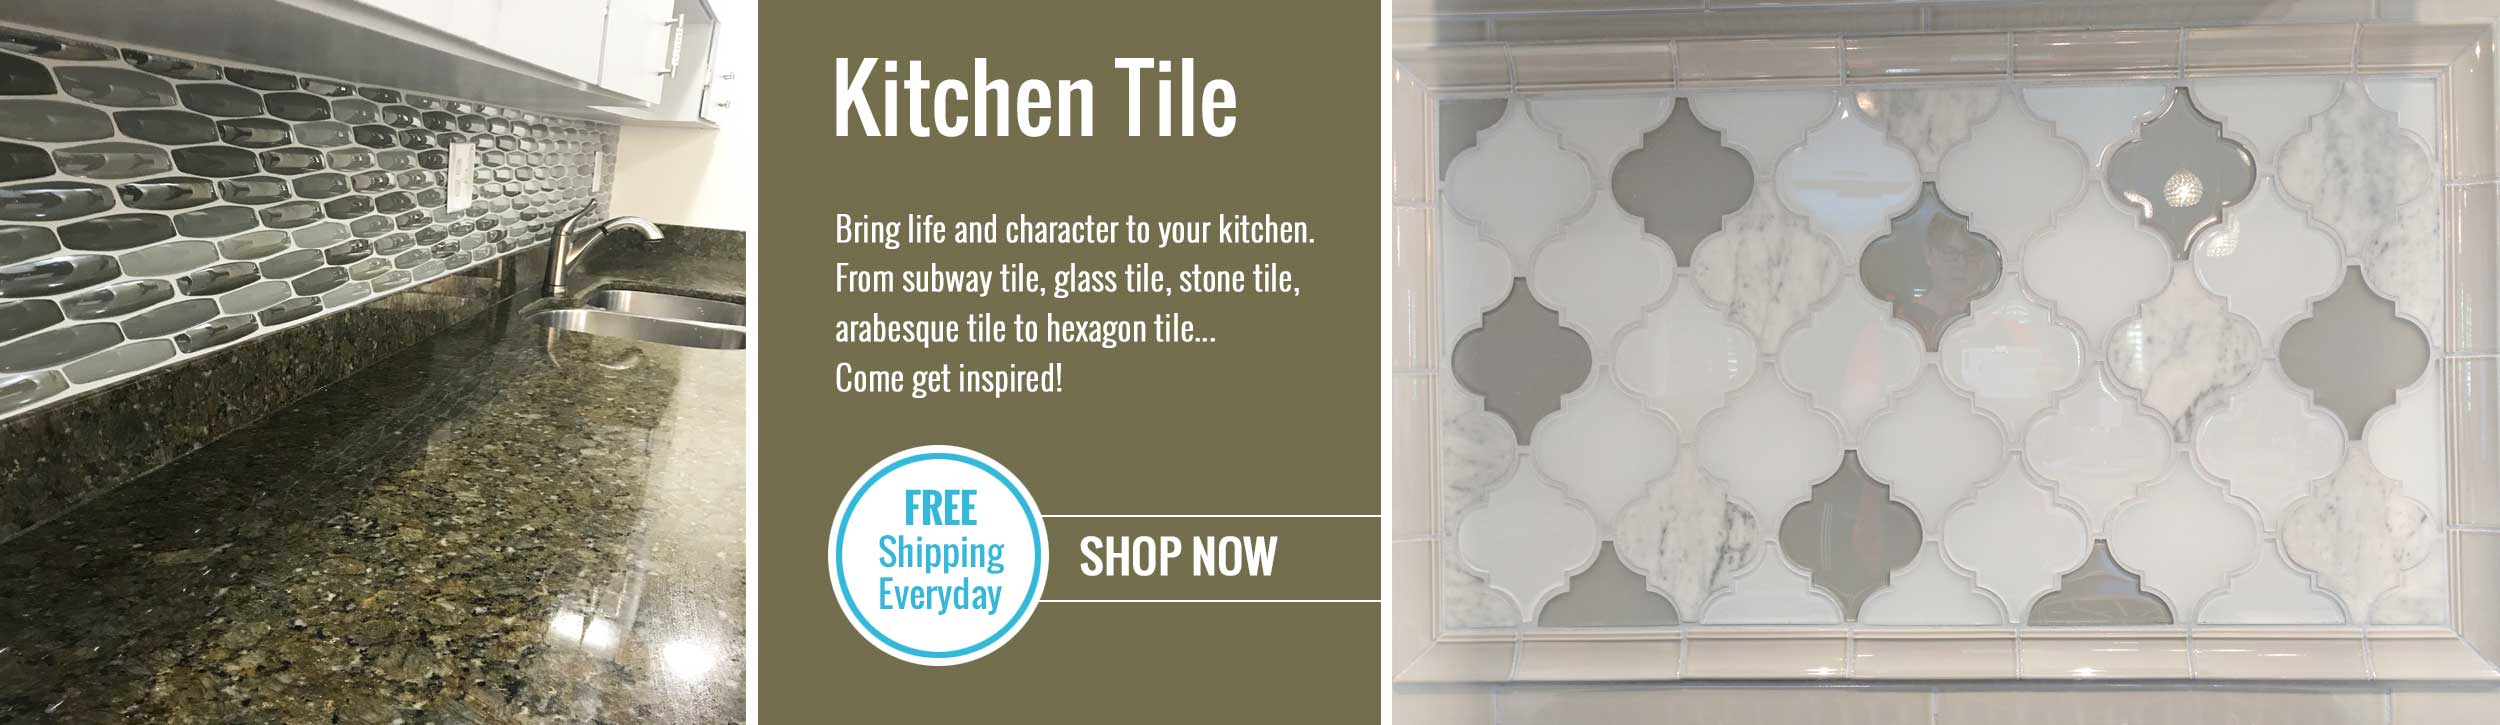 Shop kitchen tile in hexagon, arabesque, subway